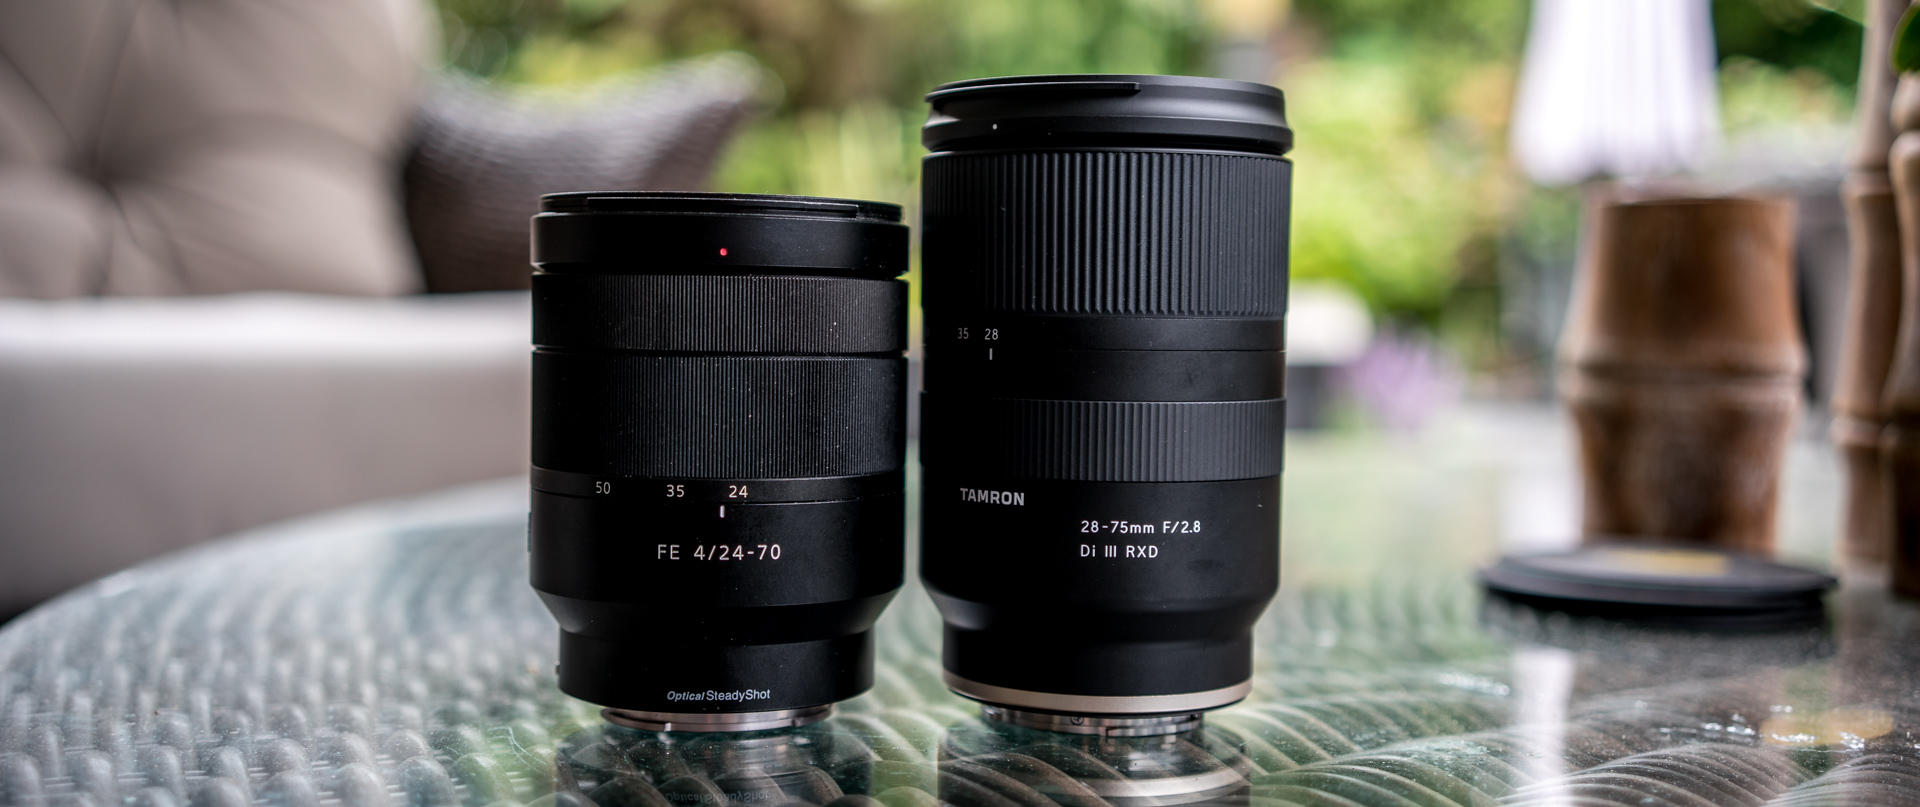 sony zeiss 24-70 f4 vs tamron 28-75 f2.8